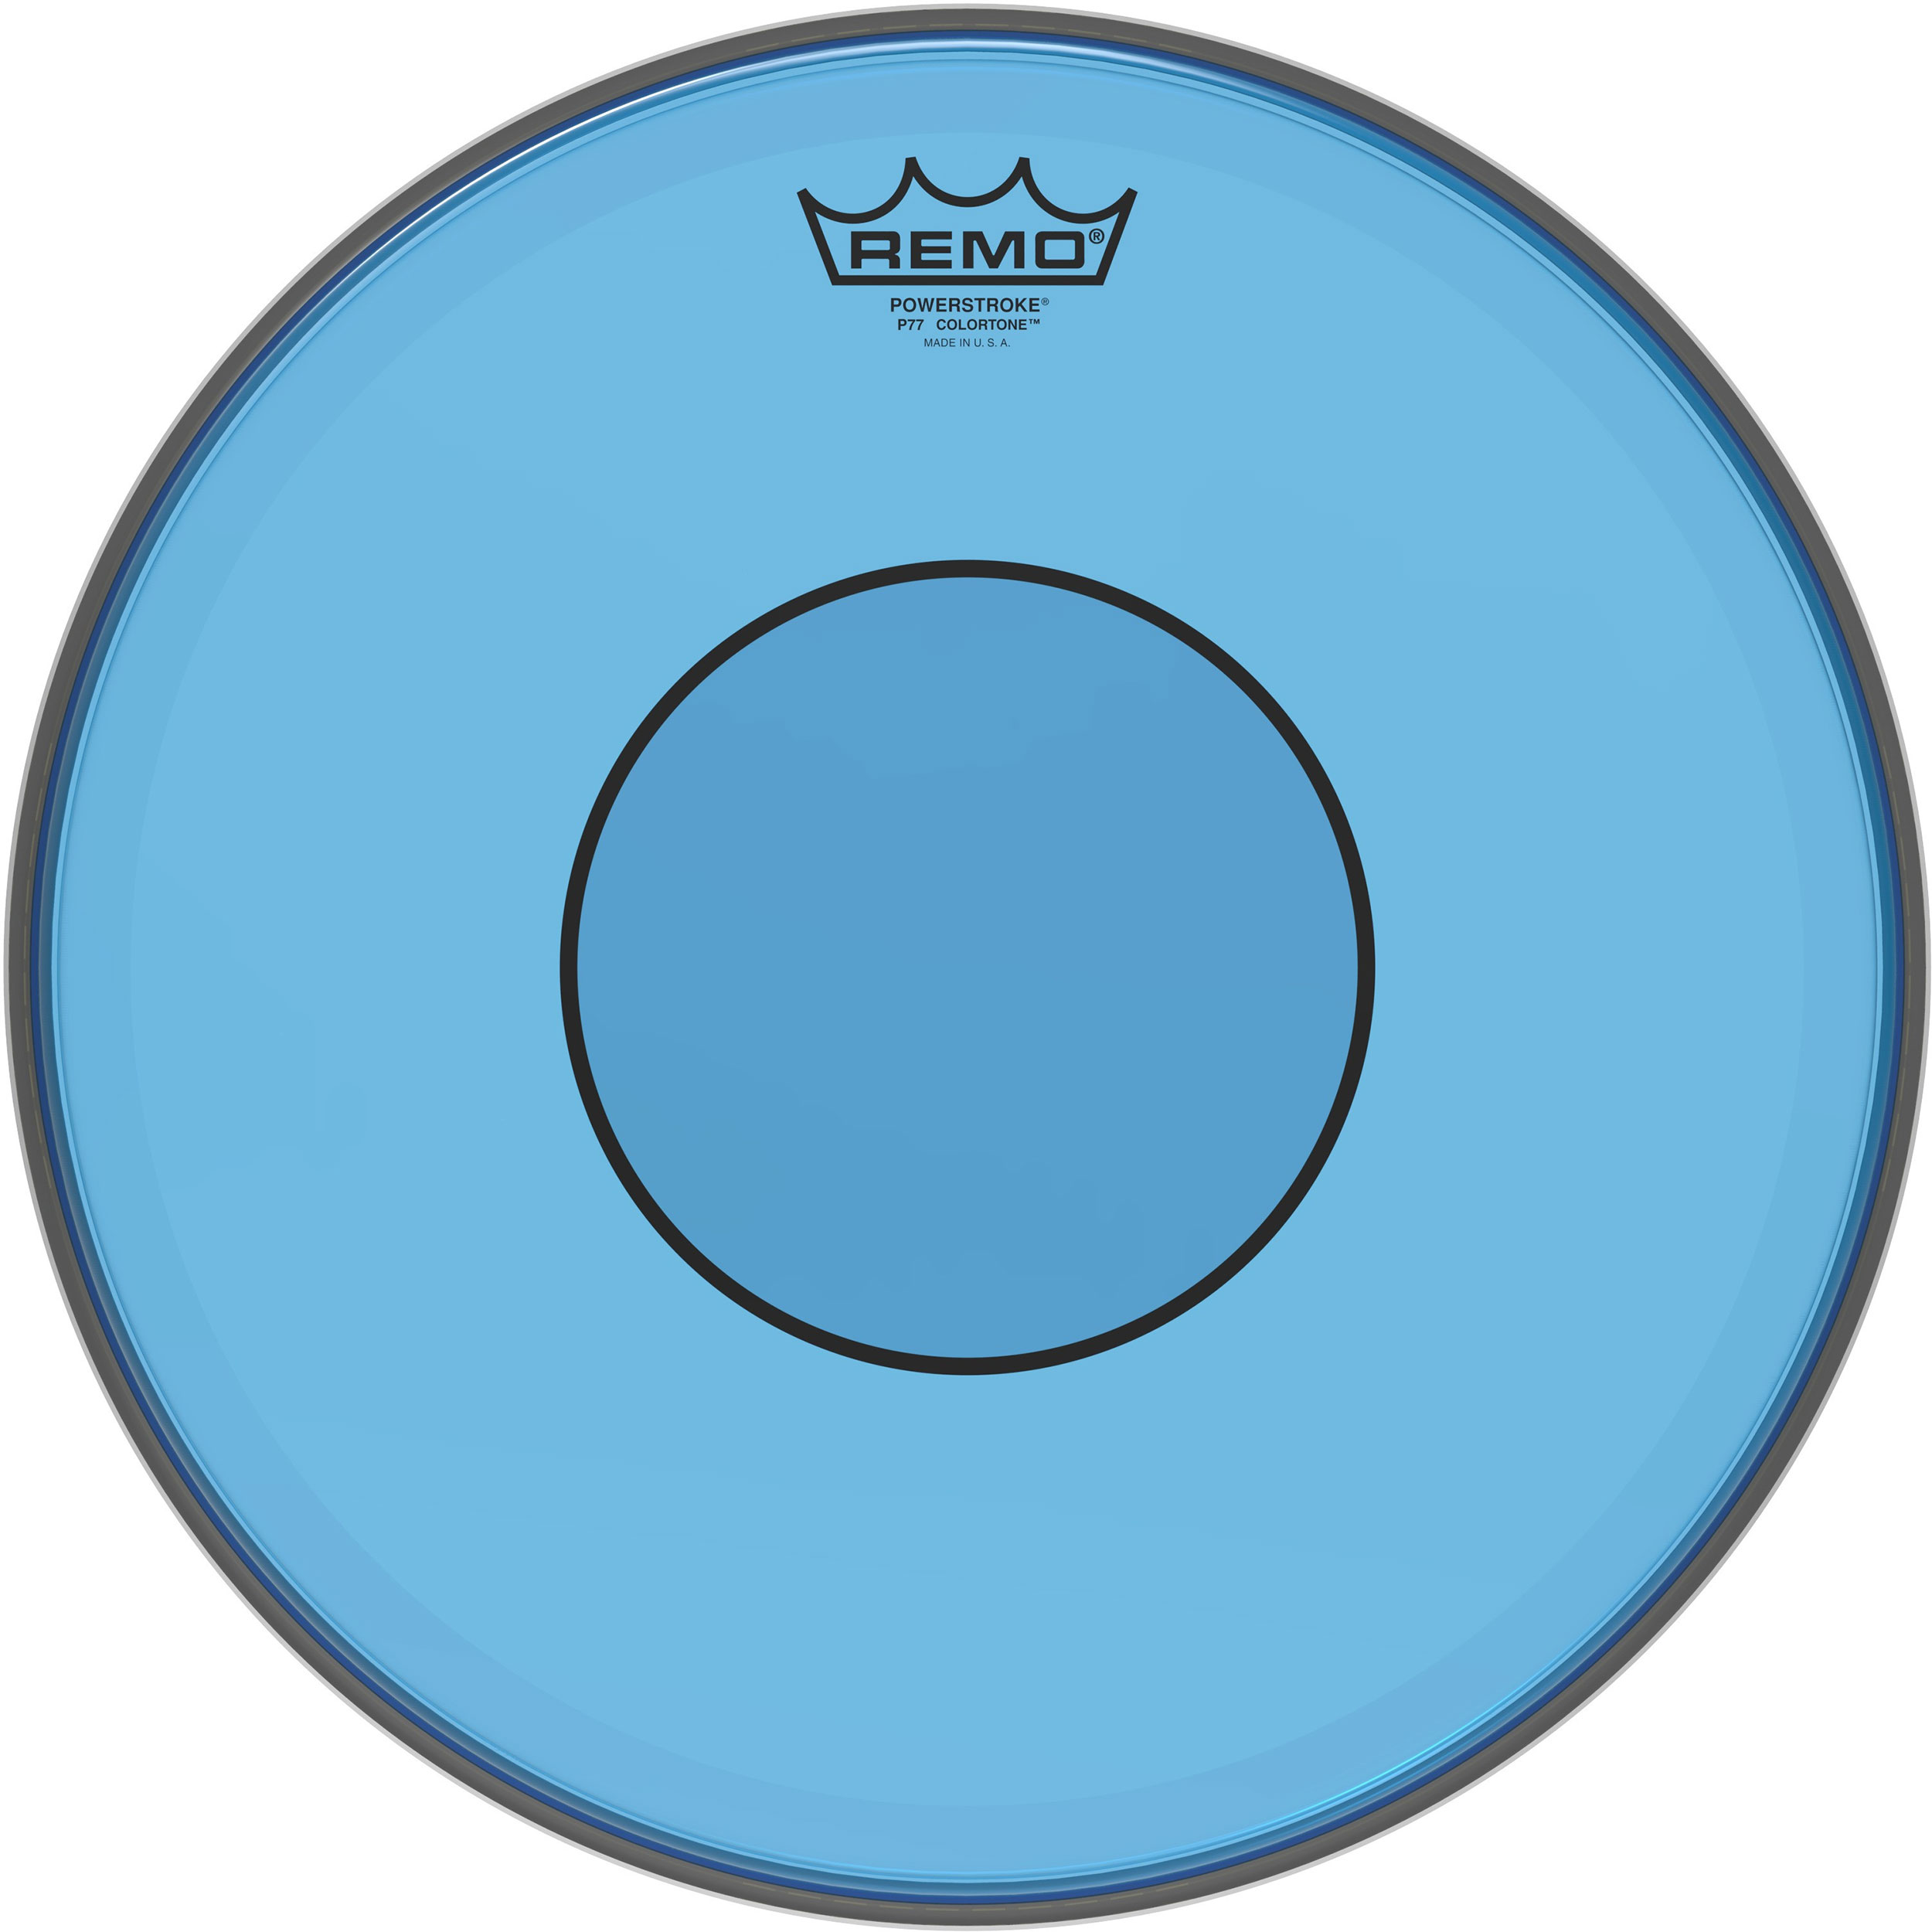 "Remo 13"" Powerstroke 77 Colortone Blue Drum Head"